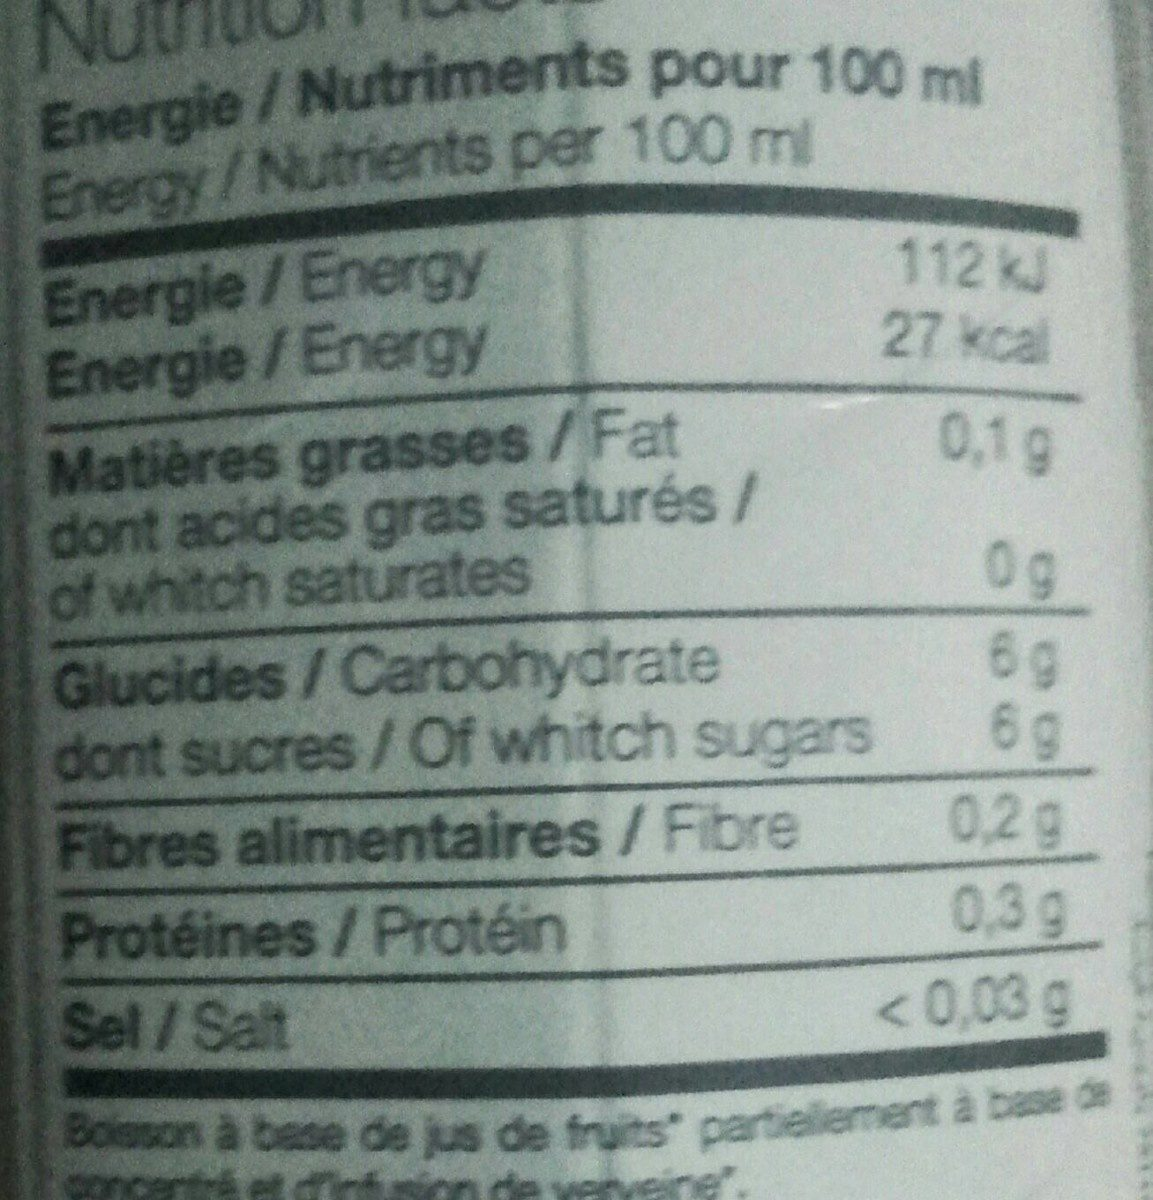 Pêche-Citron-Verveine - Nutrition facts